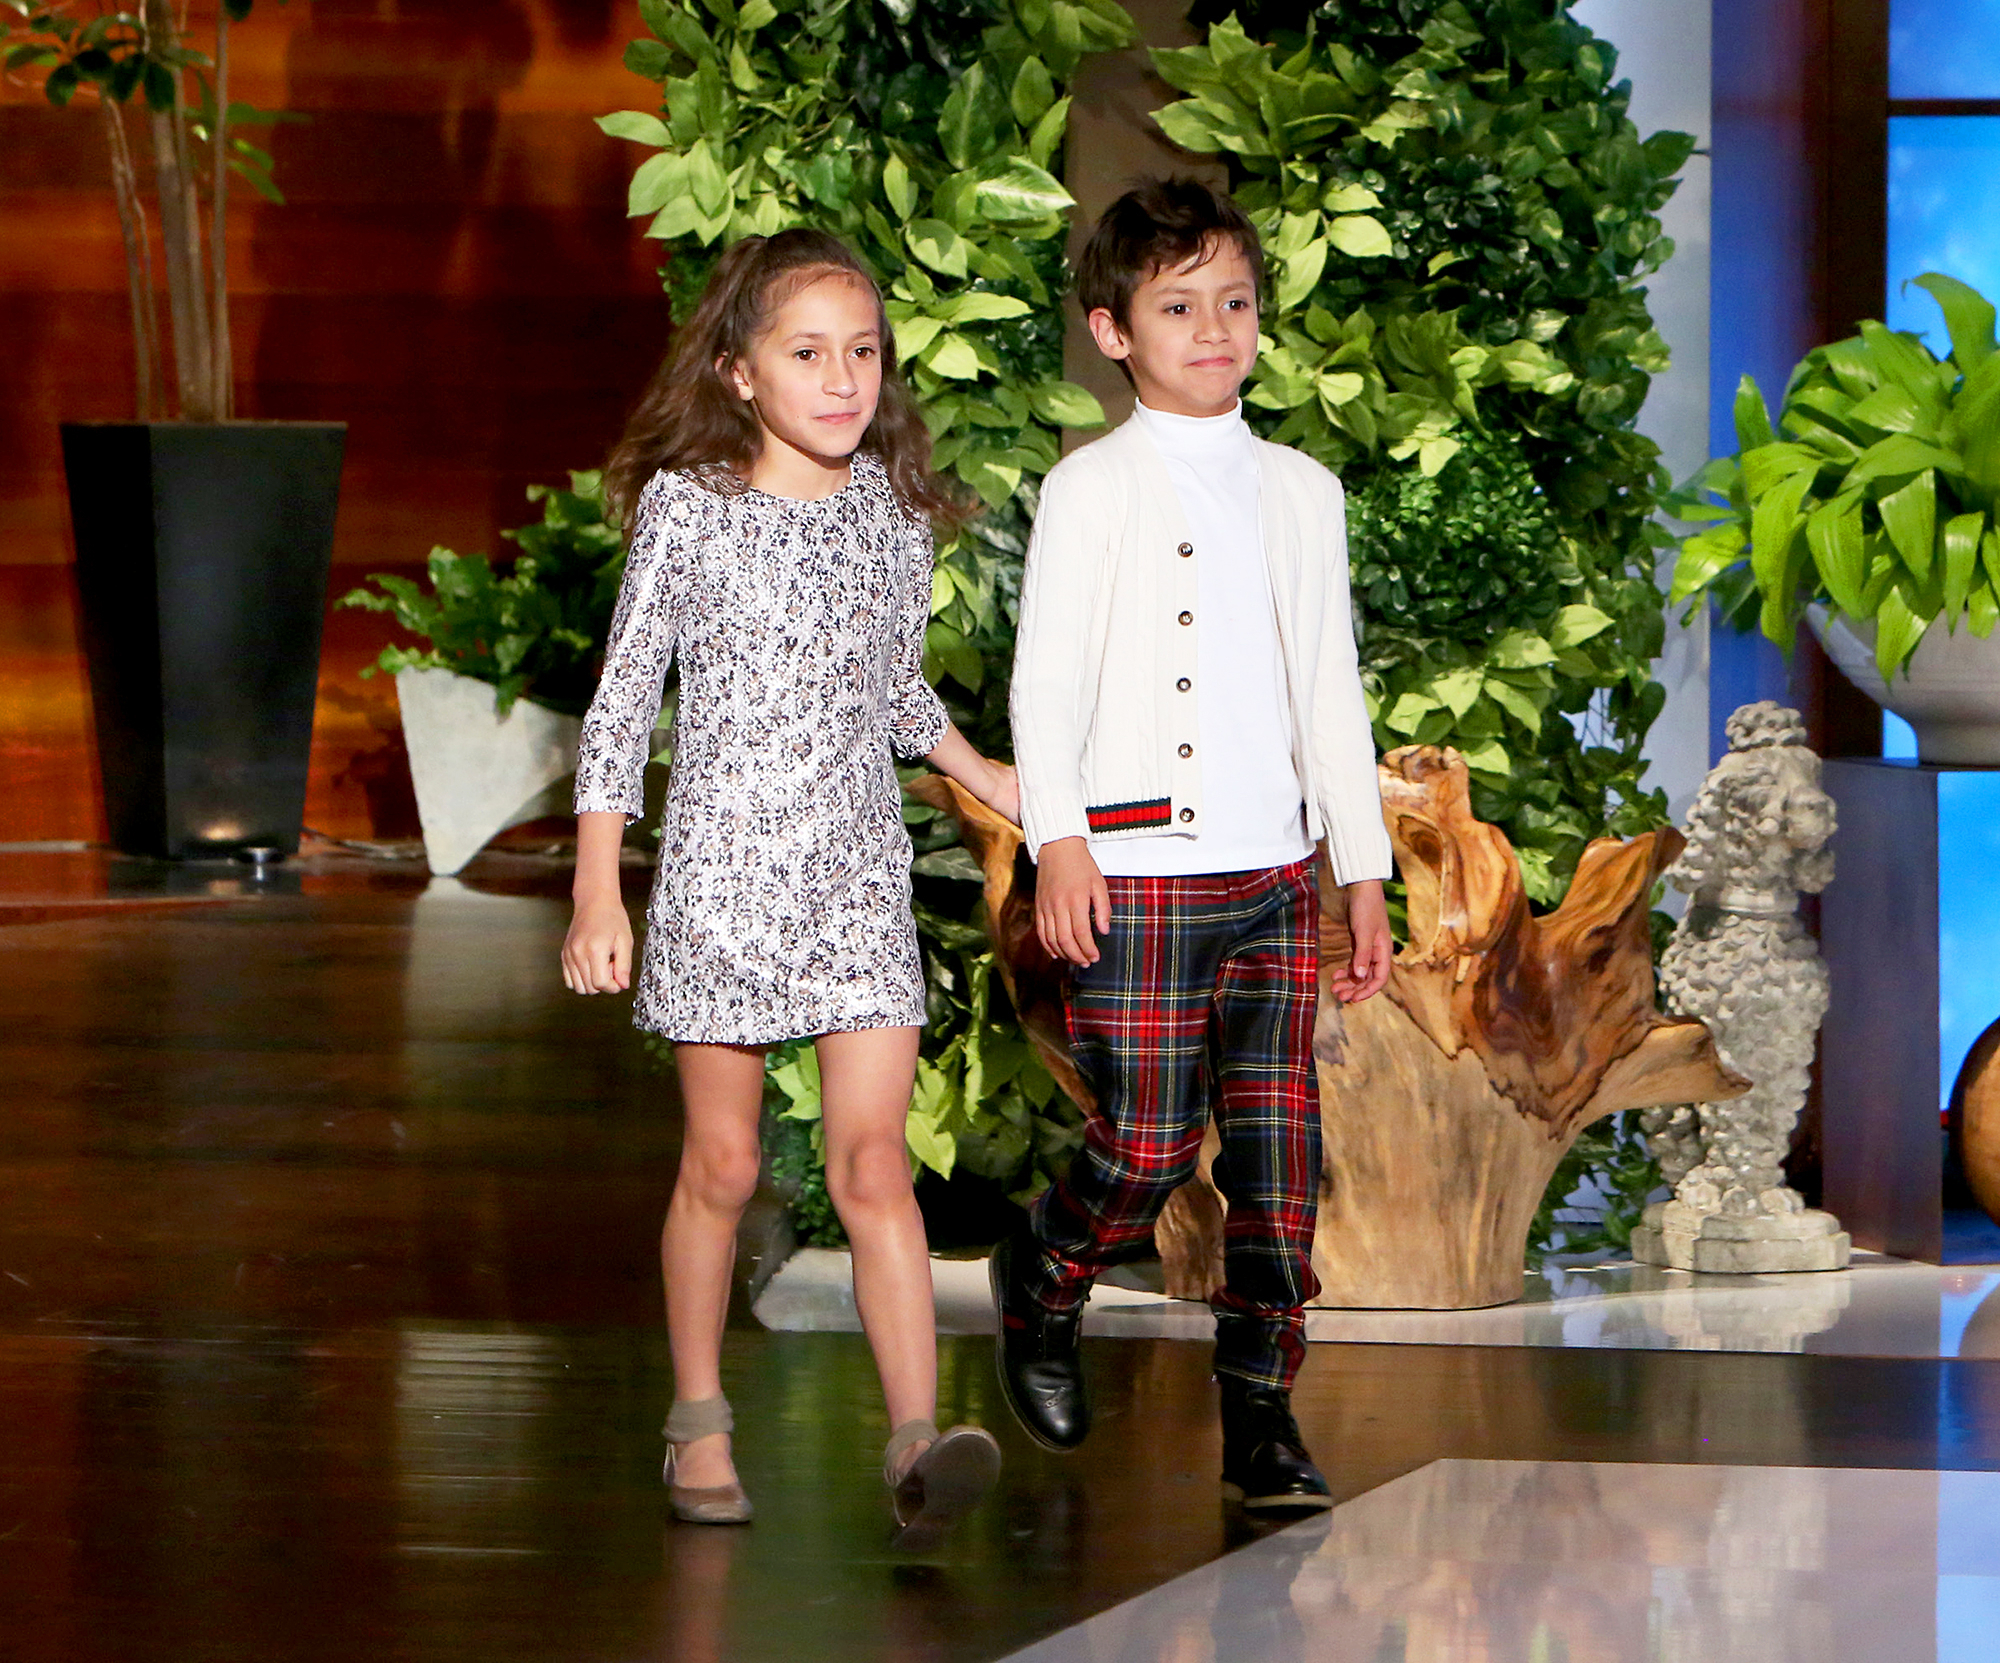 Emme and Max